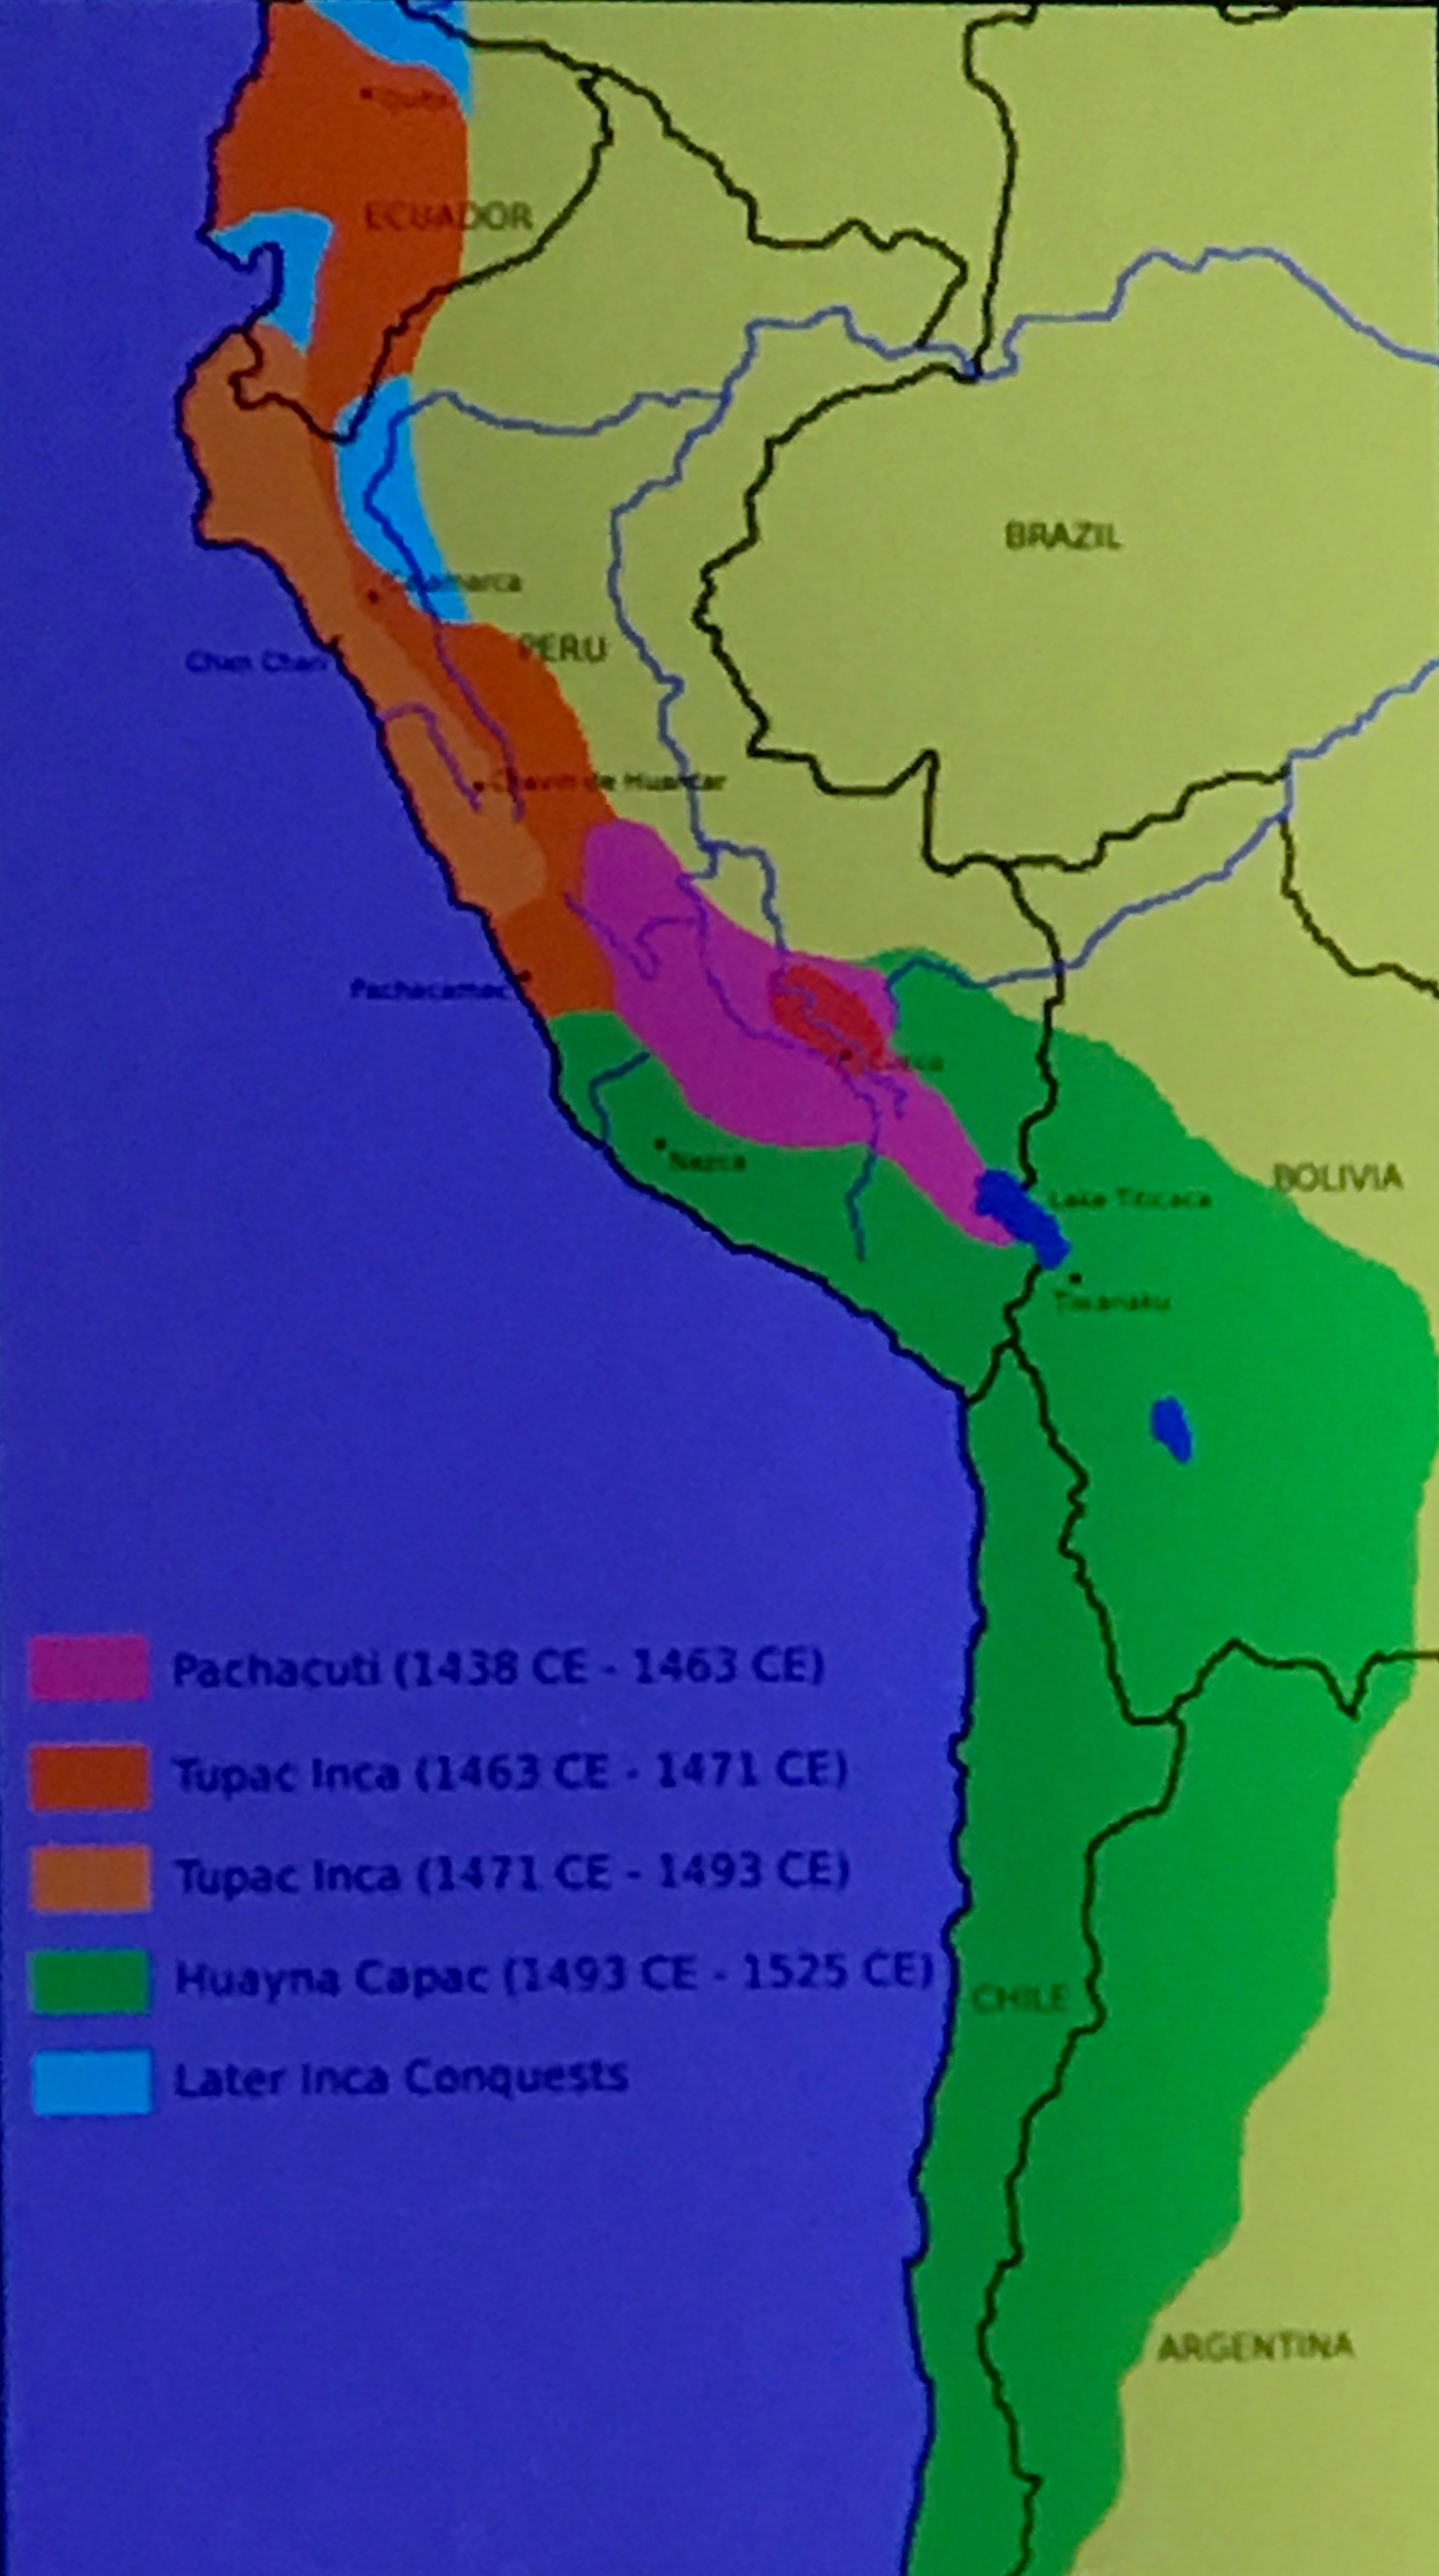 Machu Picchu: A Primer - TeachingTheAndes - Medium on zapotec map, ming dynasty, mesopotamia map, peru map, nazca lines, tenochtitlan map, mexico city map, cheyenne map, columbian exchange, olmec map, mughal empire map, teotihuacan map, mississippian map, tikal map, mongol empire, latin america map, indigenous peoples of the americas, byzantine empire map, machu picchu, francisco pizarro, mesoamerica map, inca society, chichen itza map, andean civilizations, mayan map, aztec map, iraca map, andes mountains map, byzantine empire, inuit map,